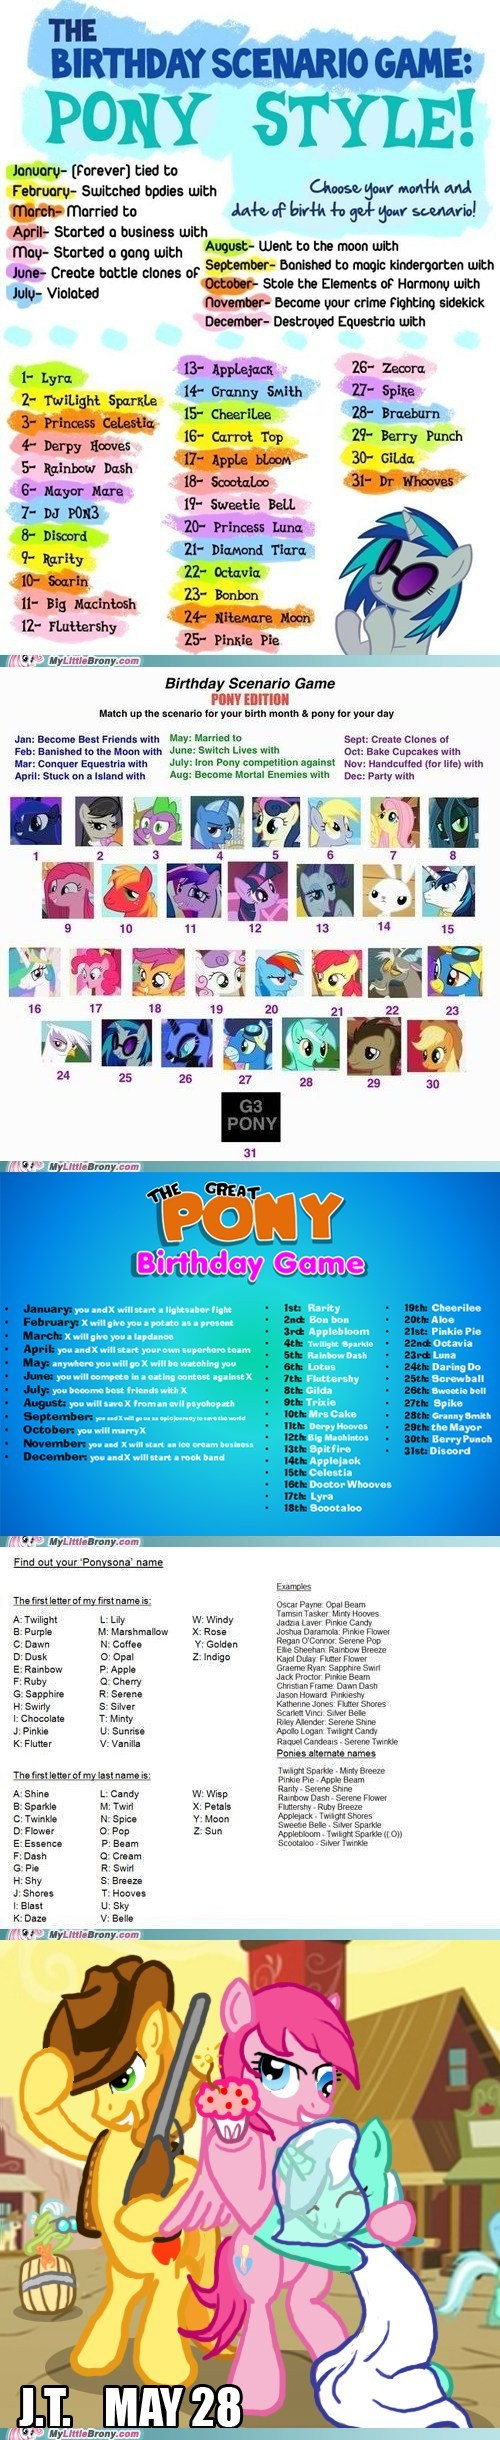 ALL the Pony Scenarios!